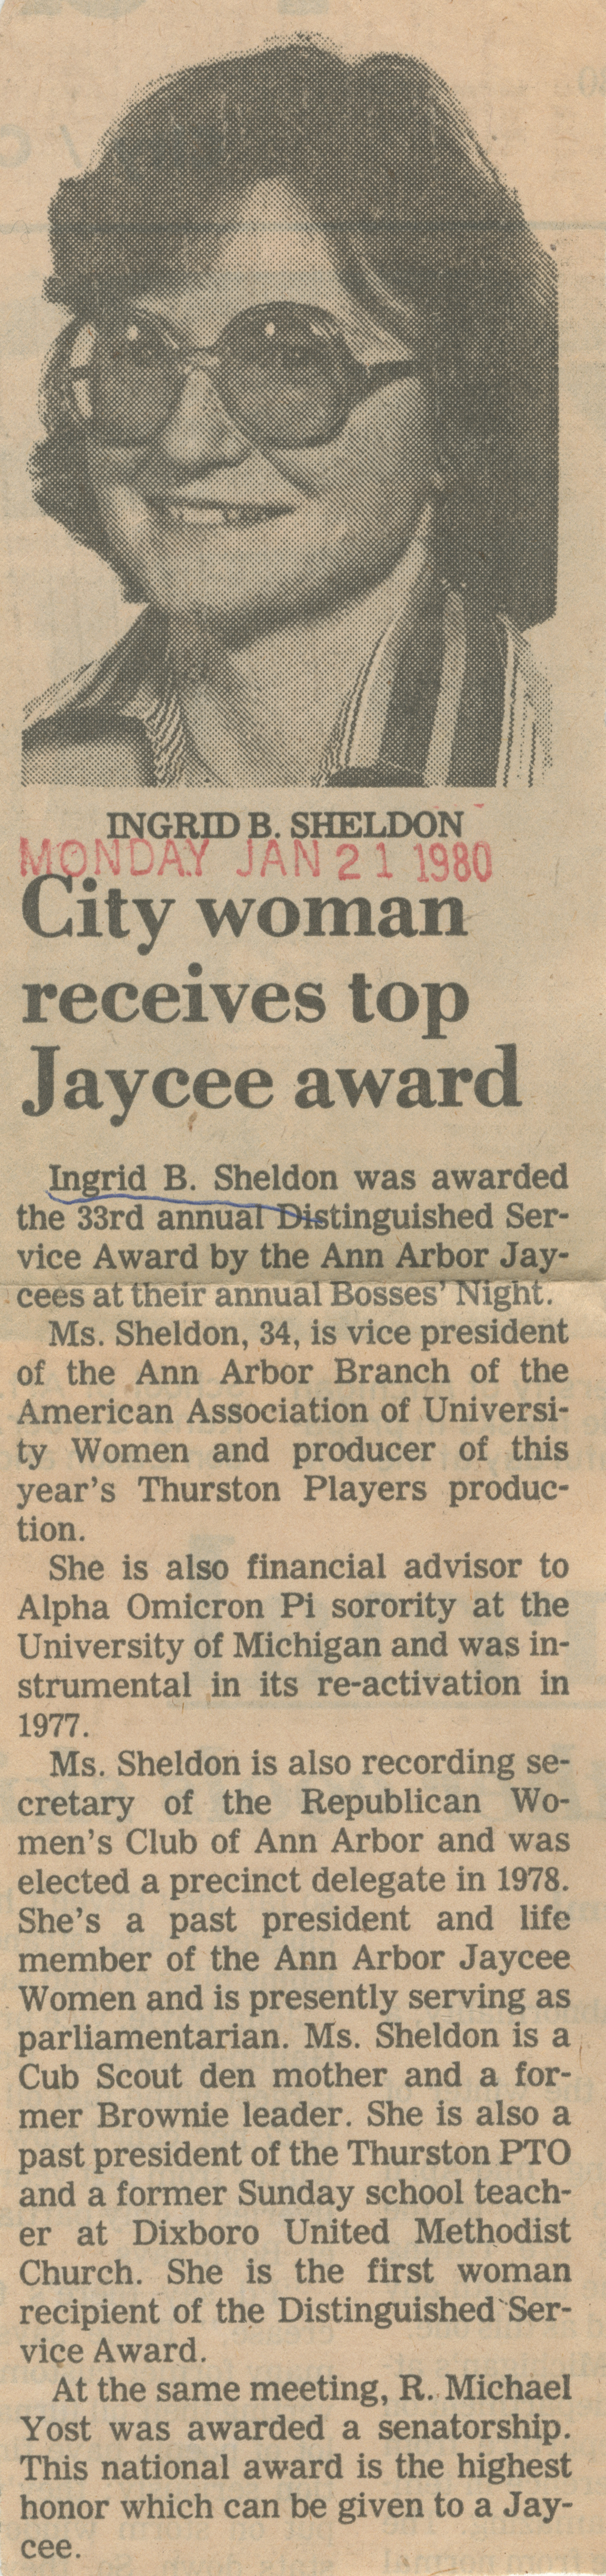 City woman receives top Jaycee award image